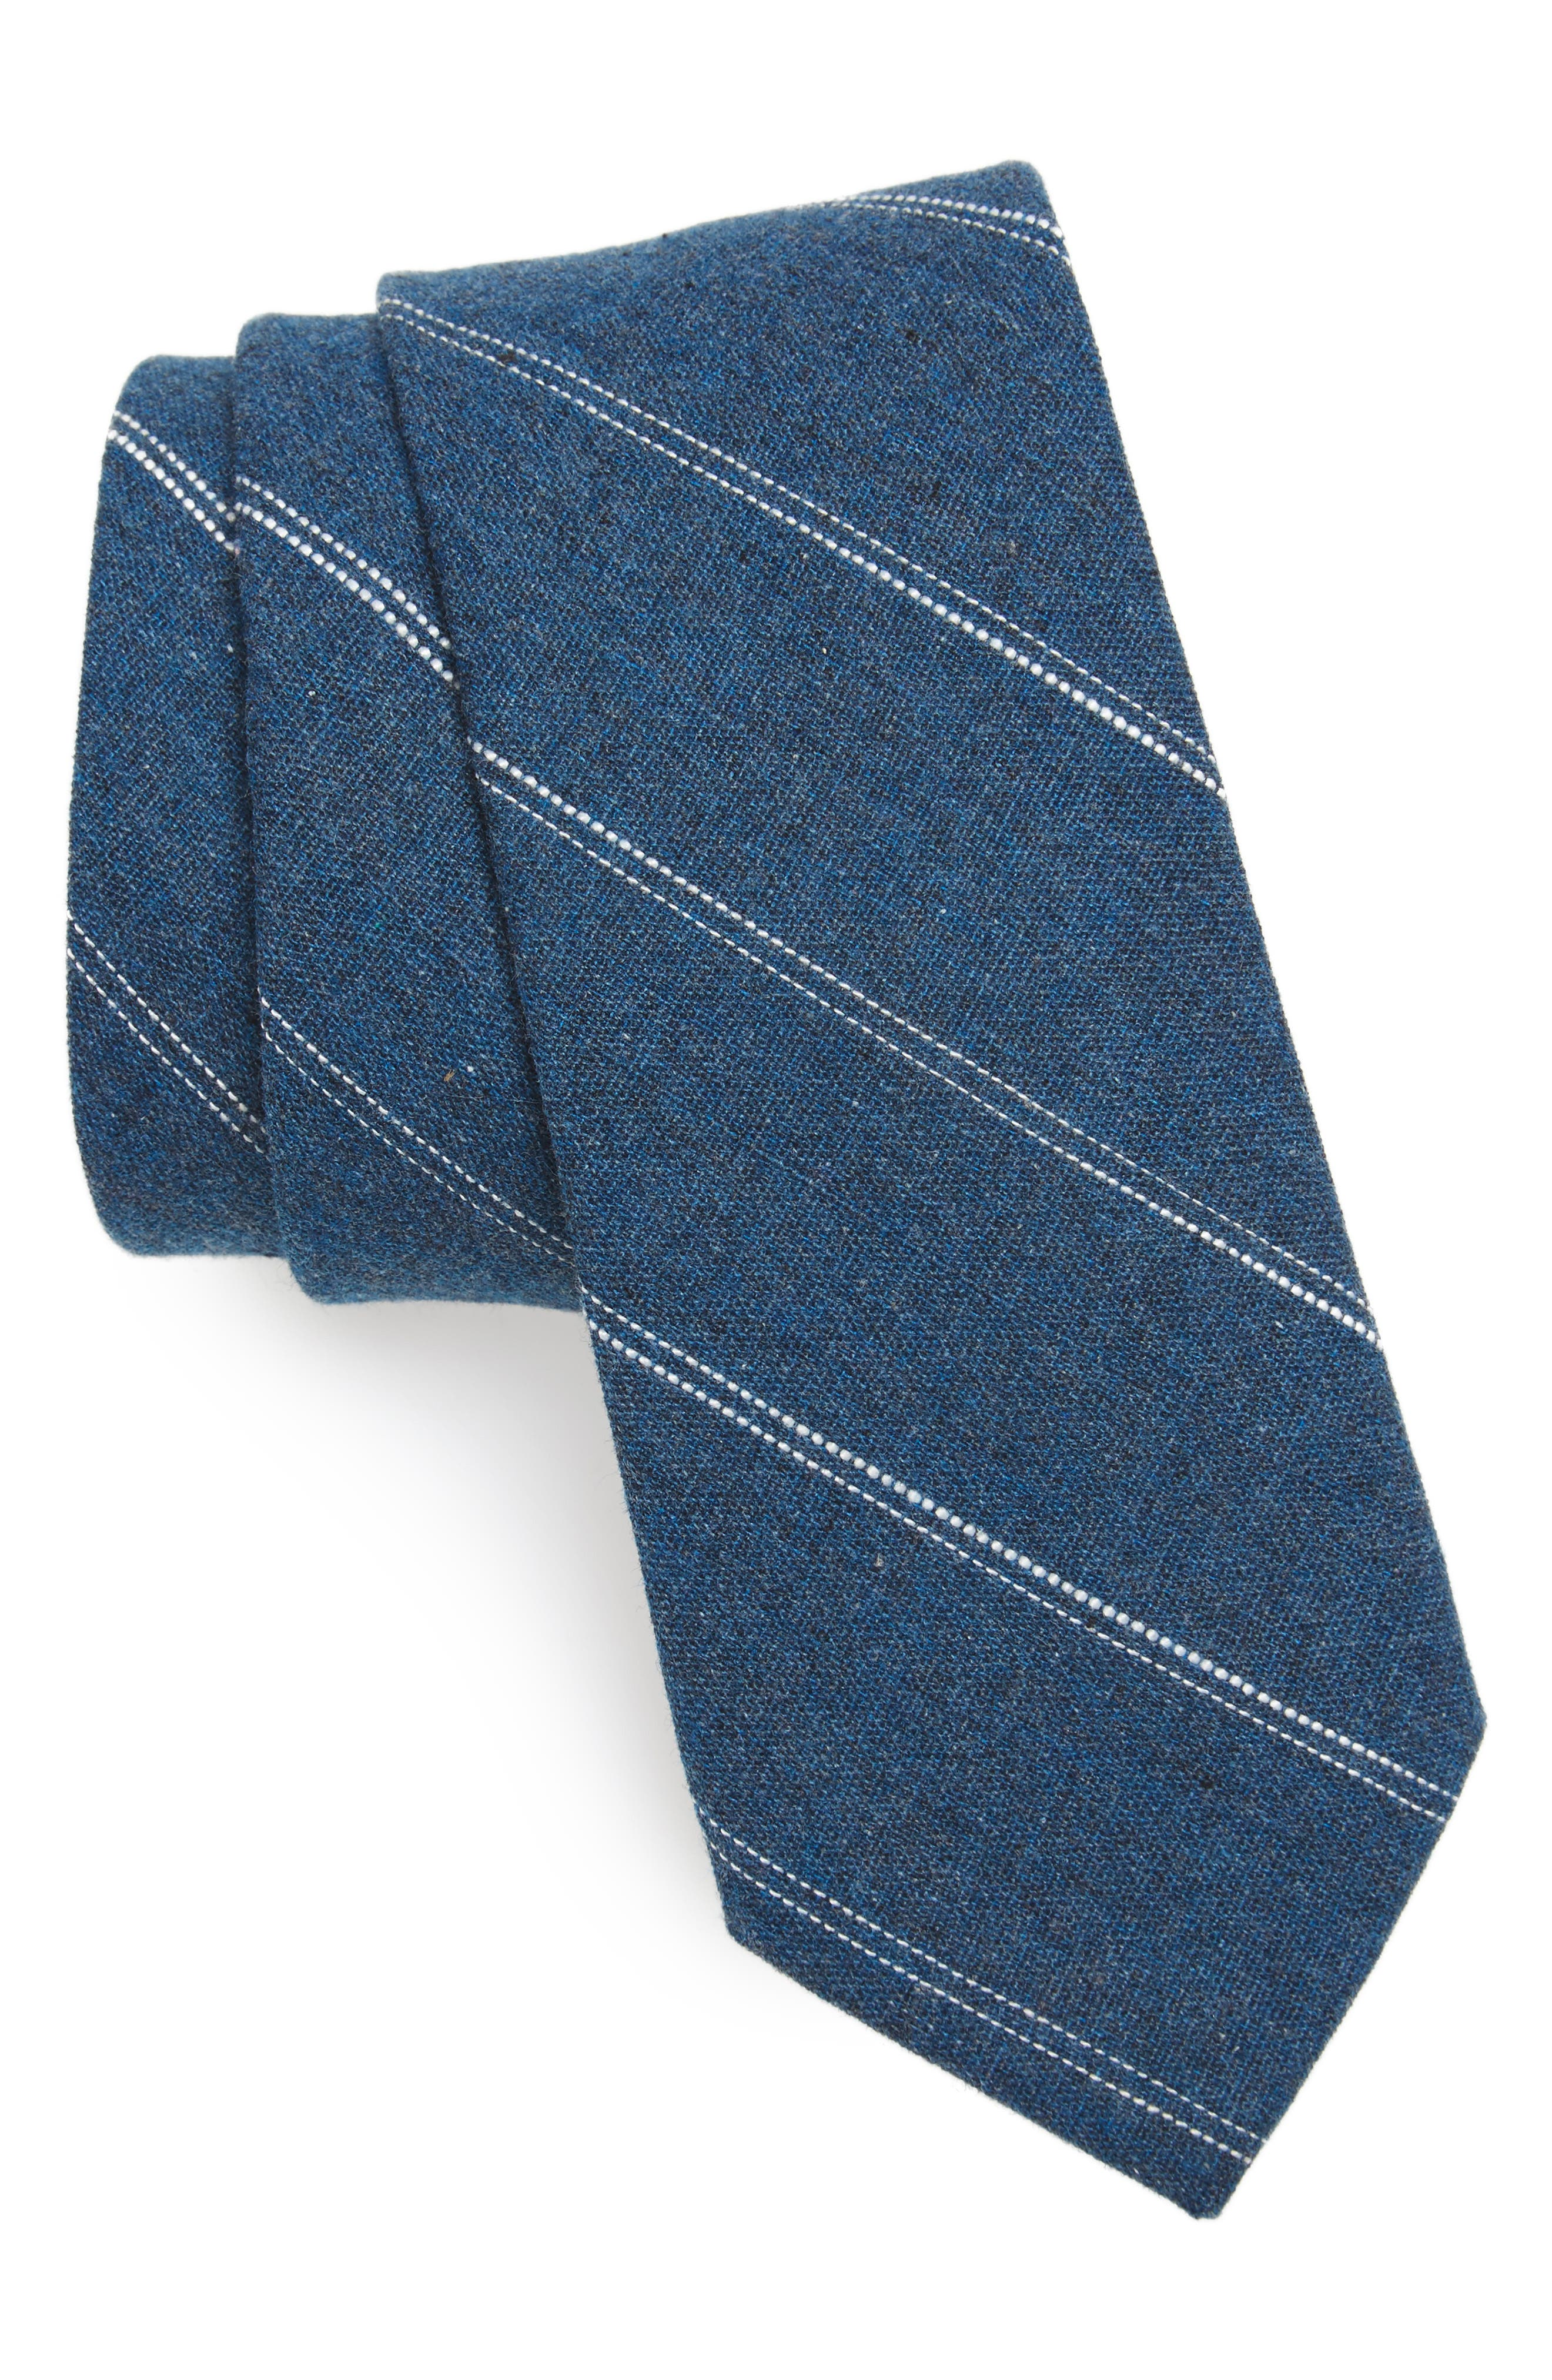 Nordstrom Men's Shop Palamino Stripe Cotton & Linen Skinny Tie